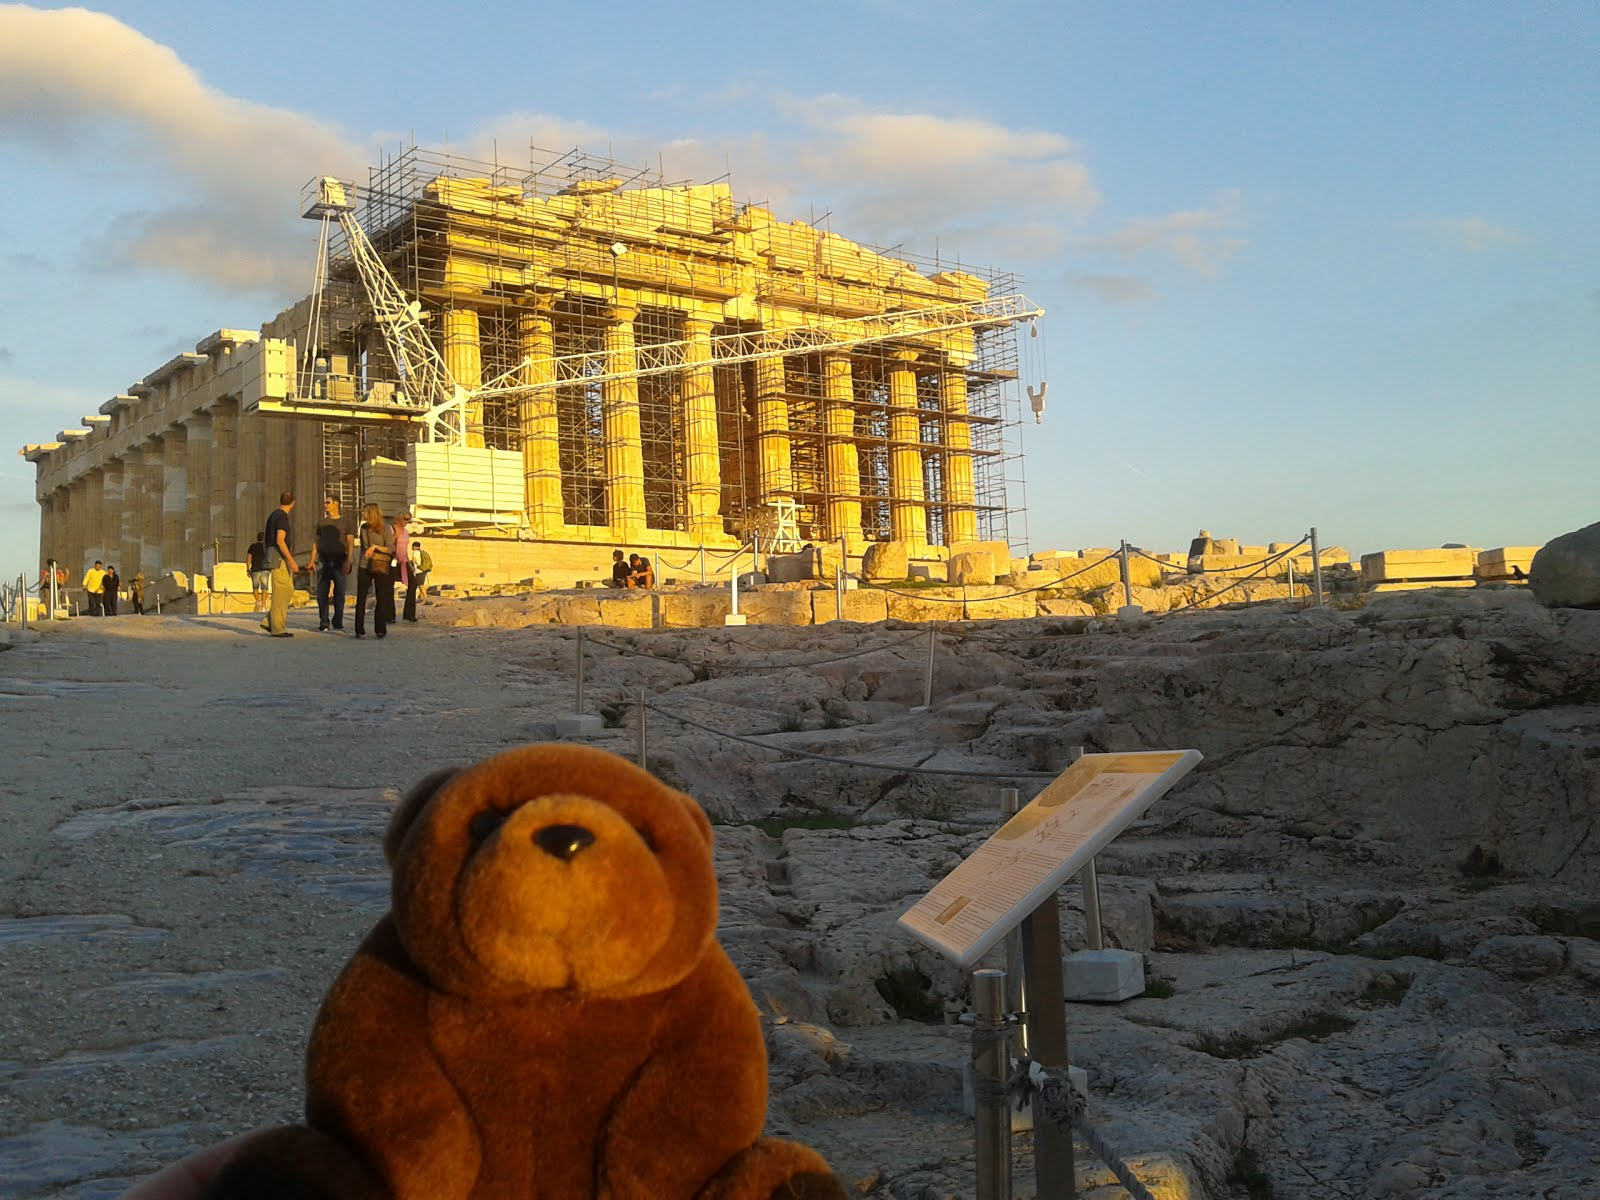 Teddy Bear in Acropolis, Athens